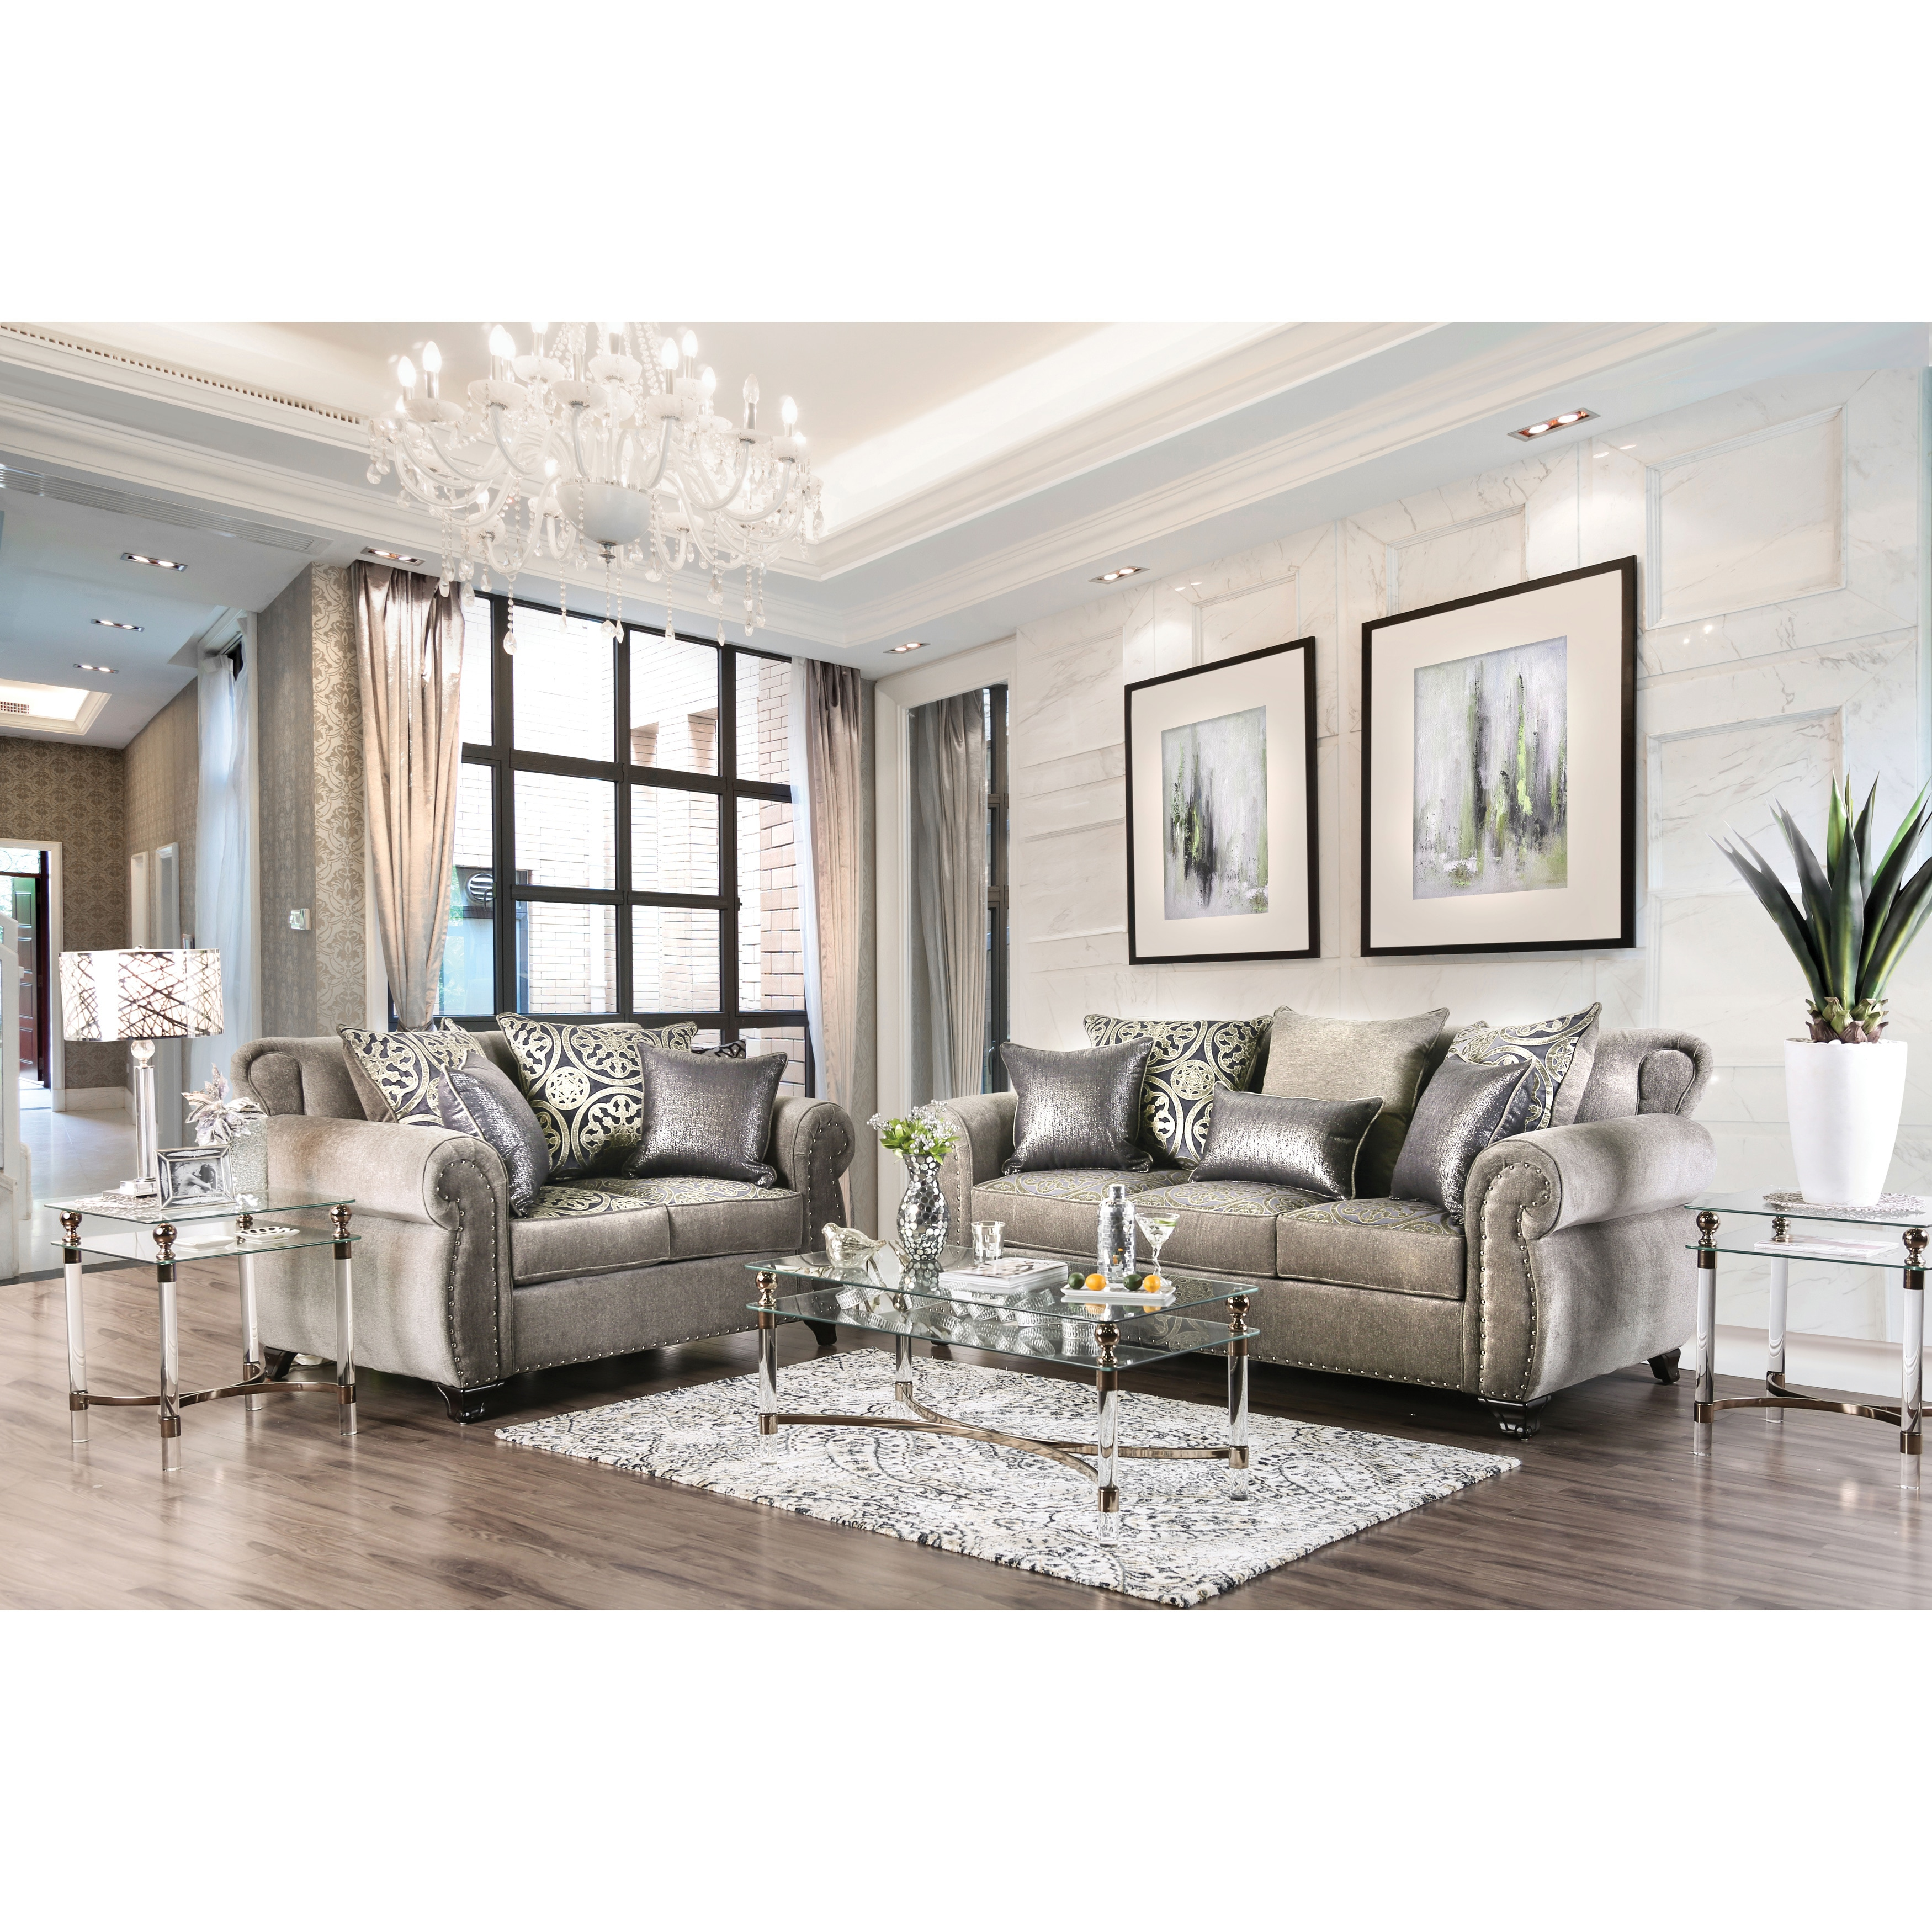 Superieur Shop Furniture Of America Daeler Classic 2 Piece Chenille Sofa Set   Free  Shipping Today   Overstock.com   17372984